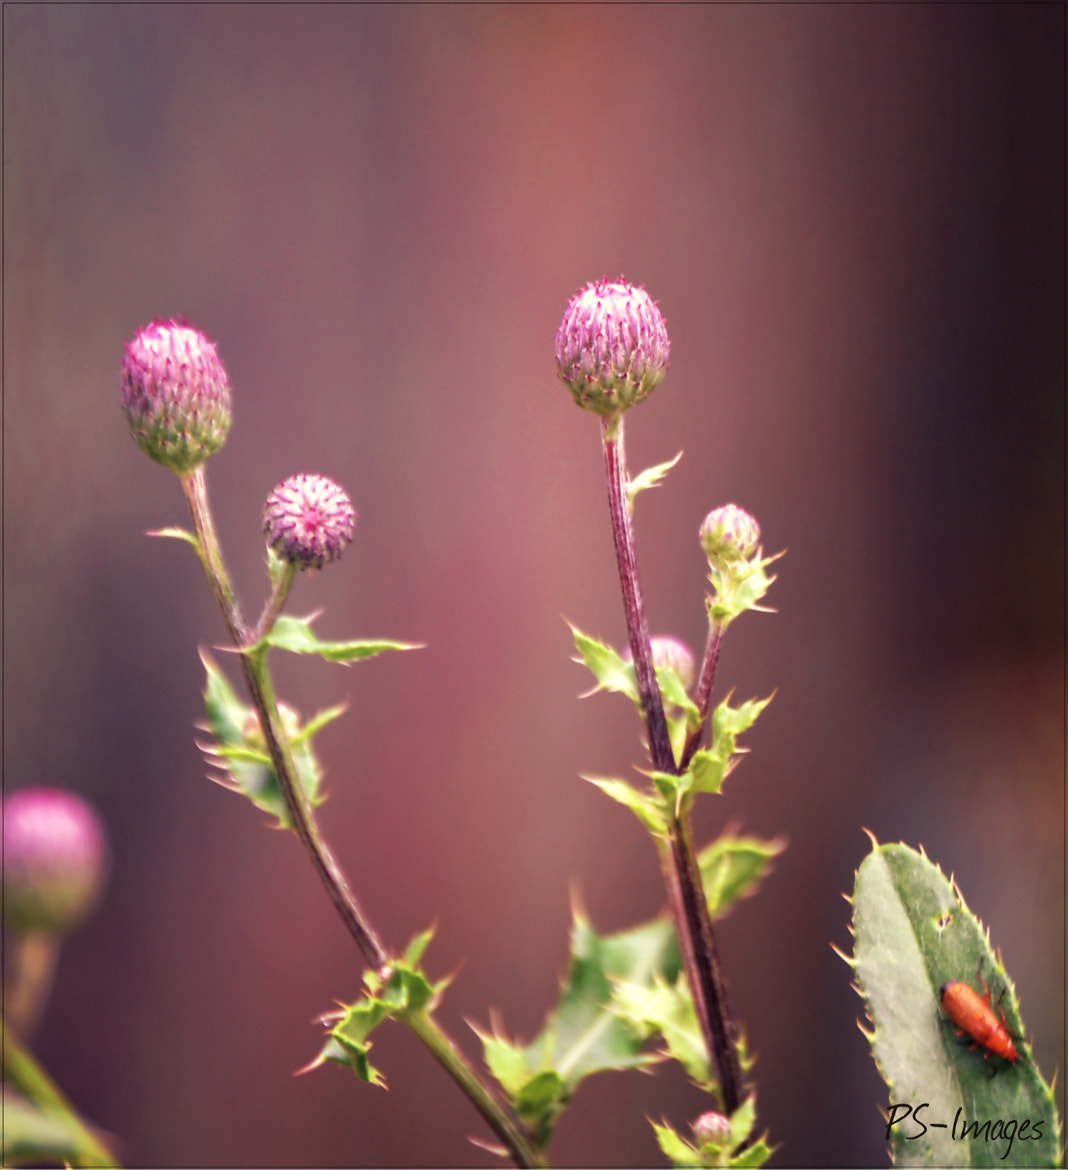 Photograph Flowers by prince sharma on 500px